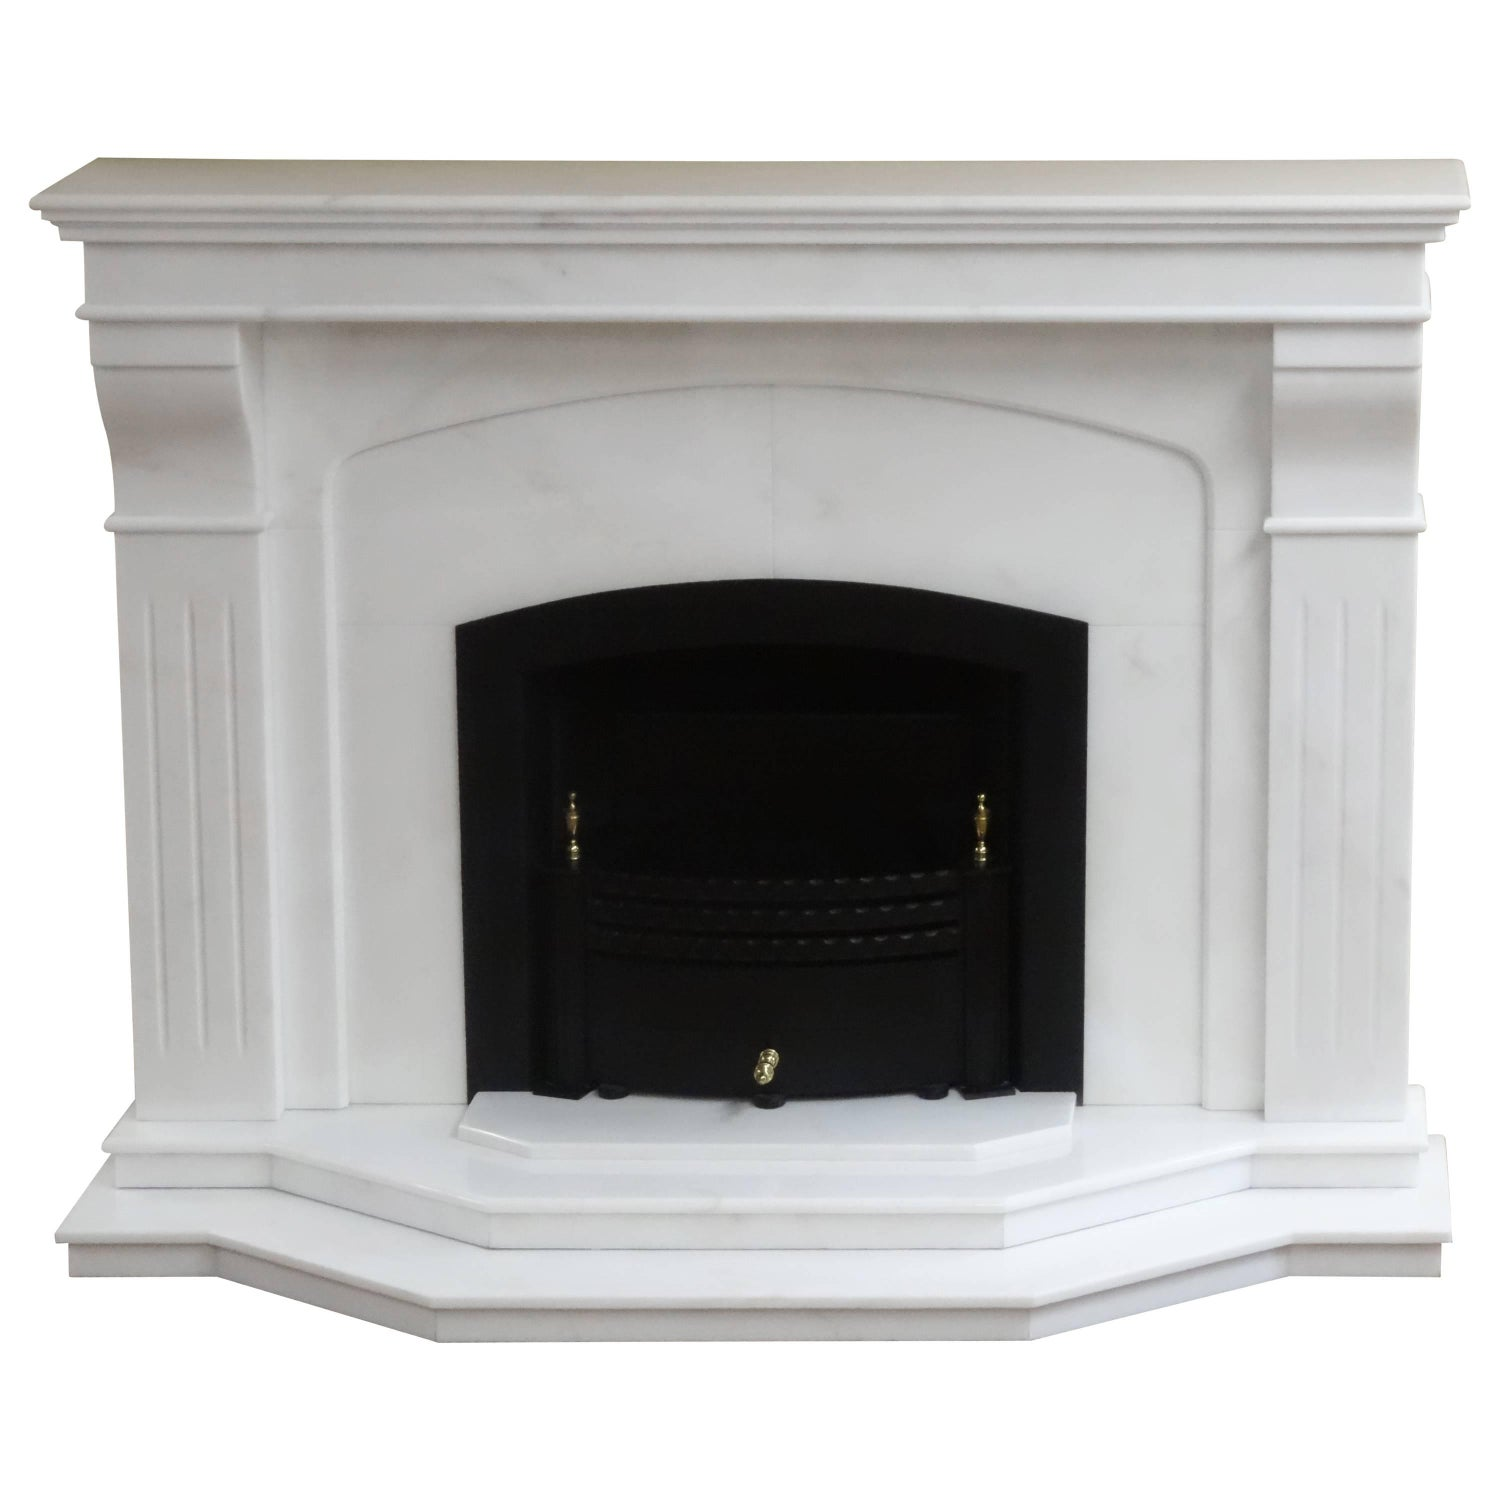 21st century contemporary carved marble fireplace with metal trim